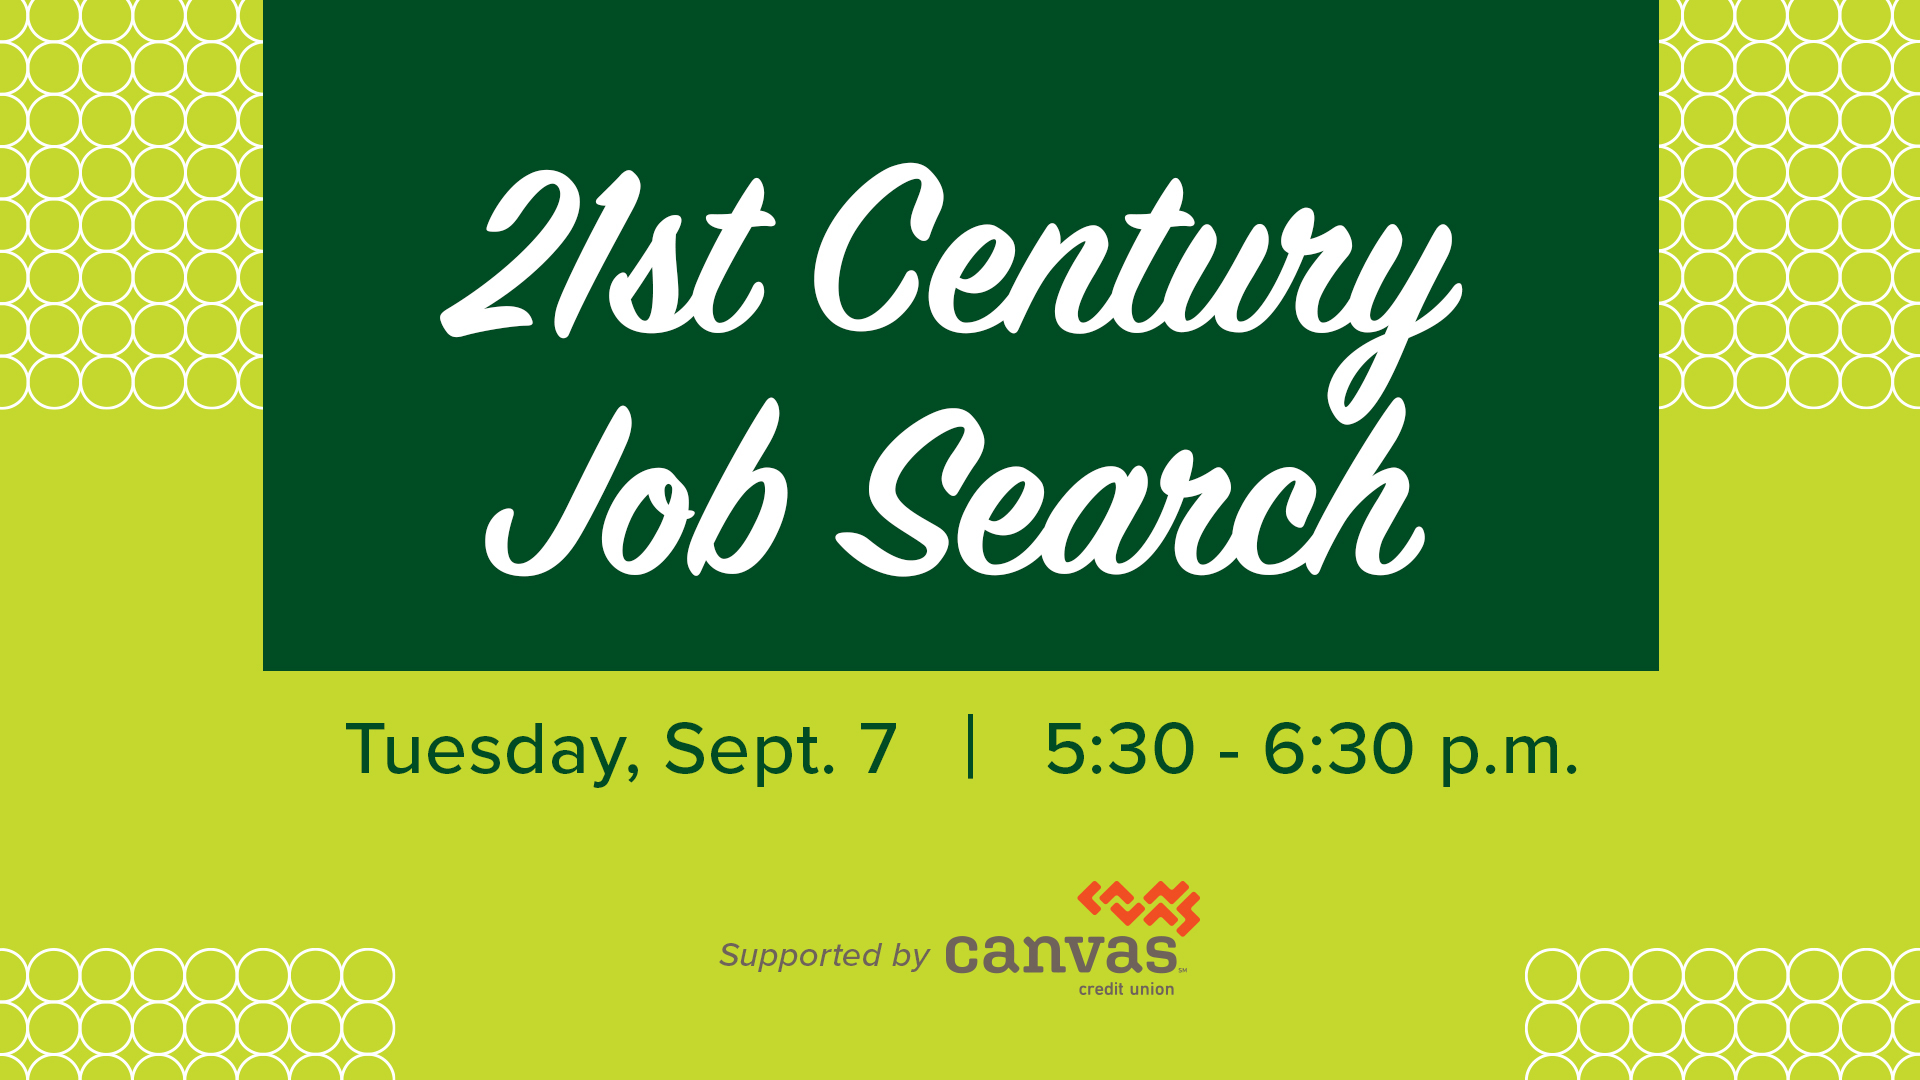 Image for 21st Century Job Search webinar